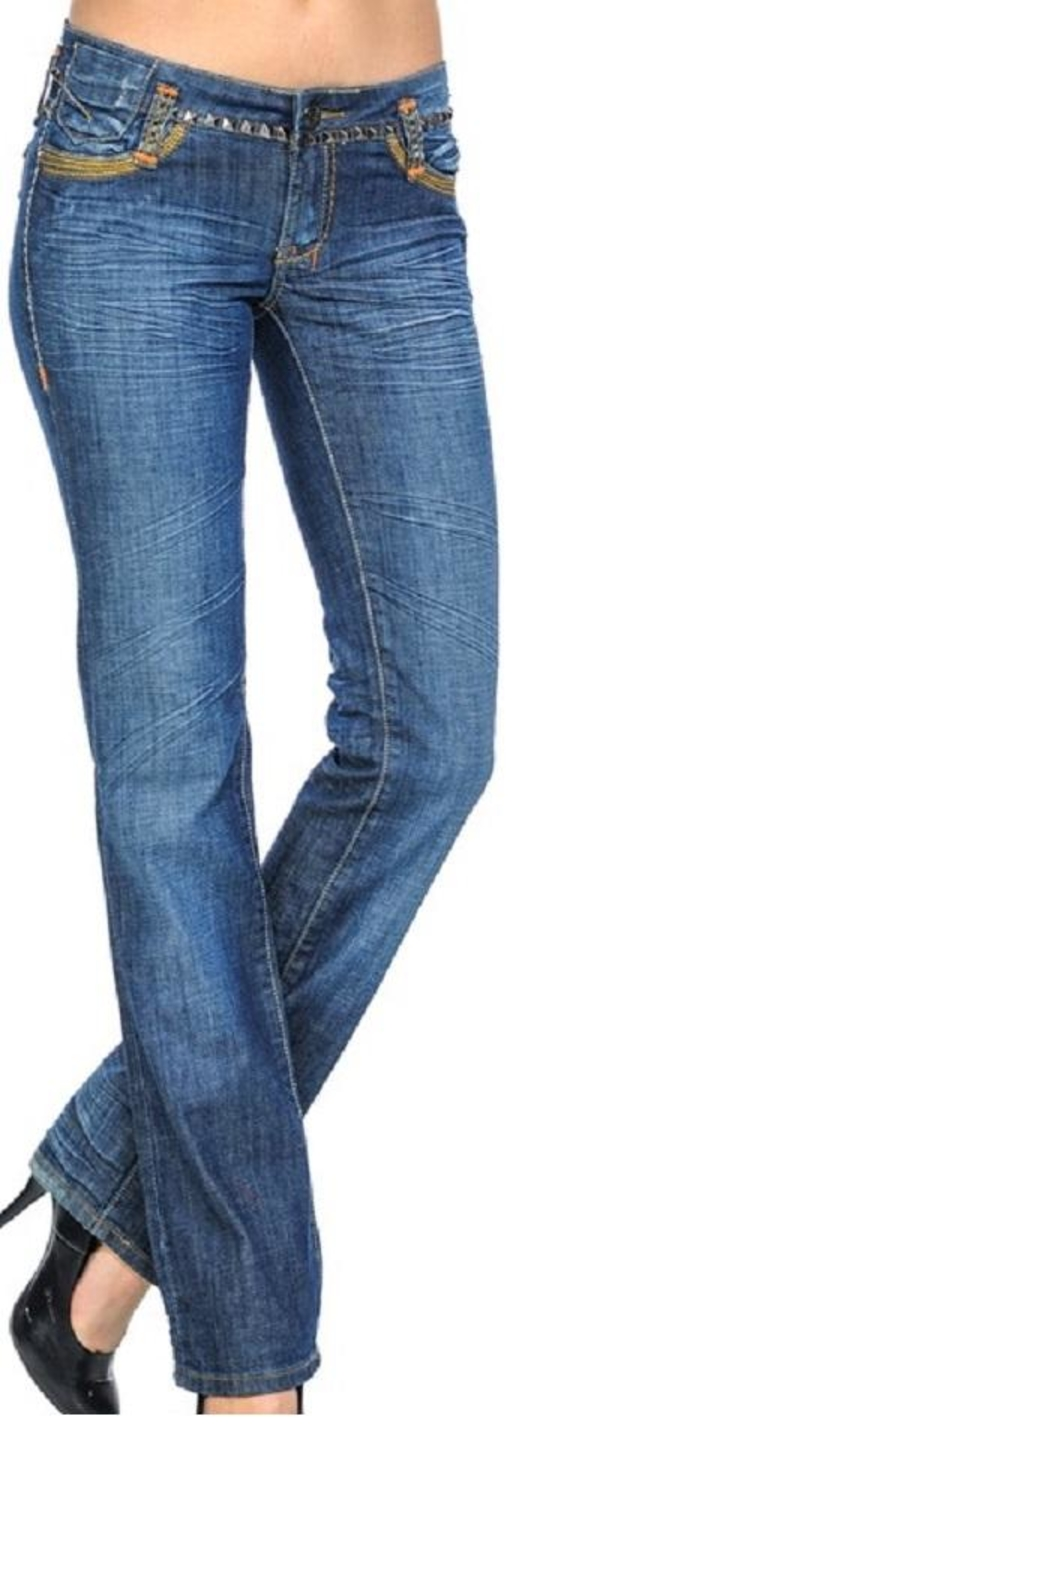 a088ac68e31 virgin only Crinkly Wash Jeans from Georgia by Posh Clothing ...